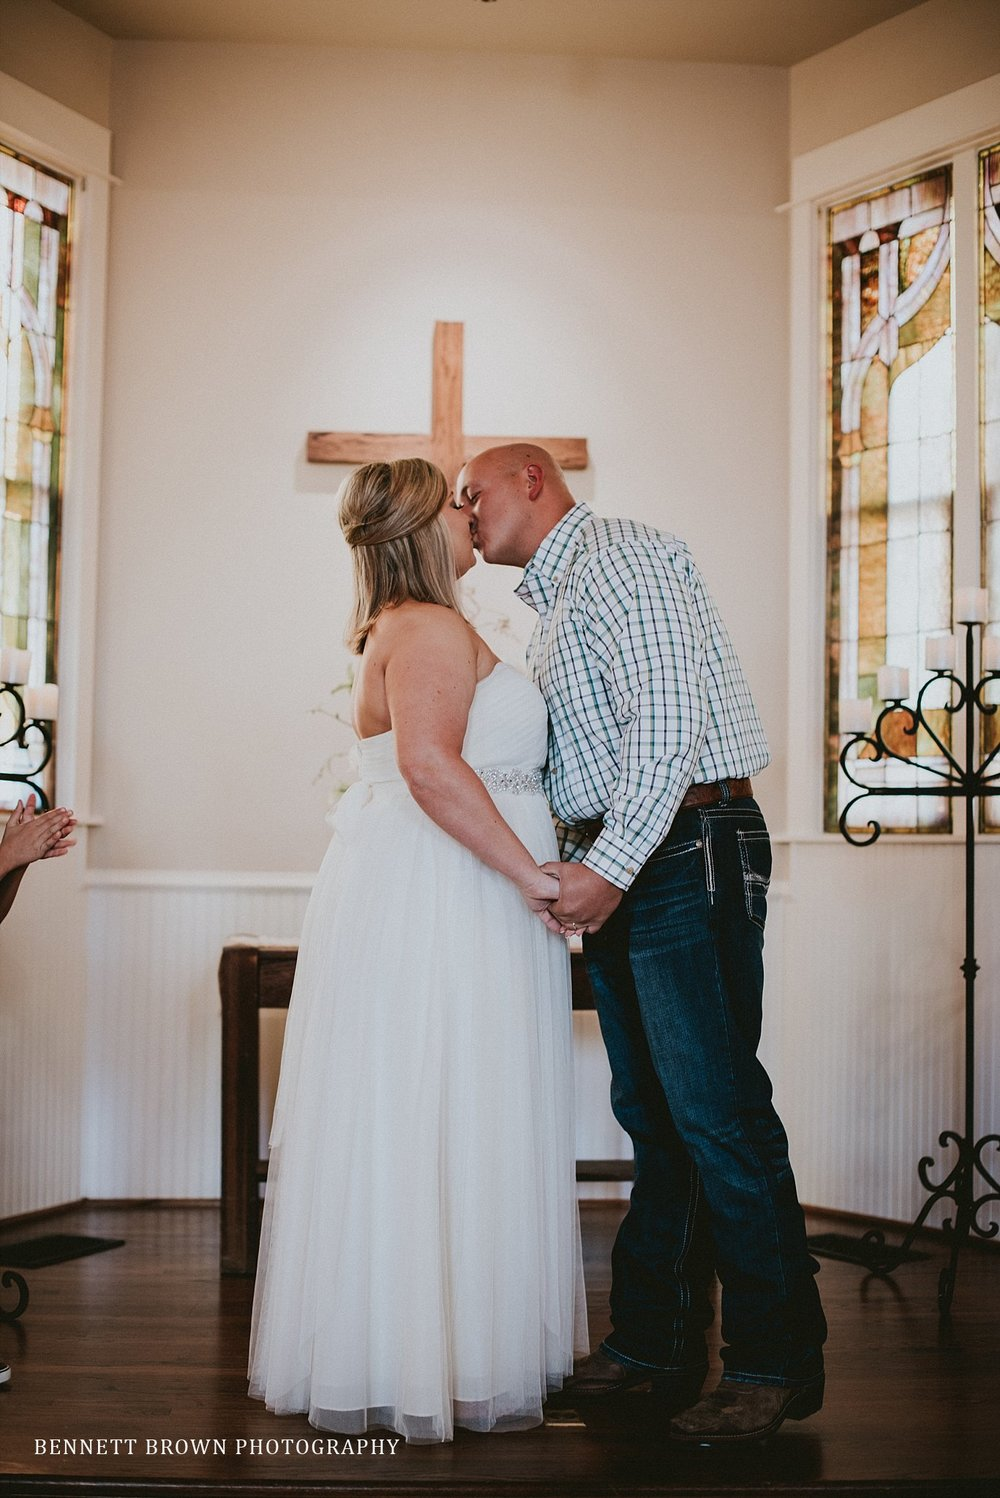 Bennett Brown Photography Chapel Church alter bride groom kiss